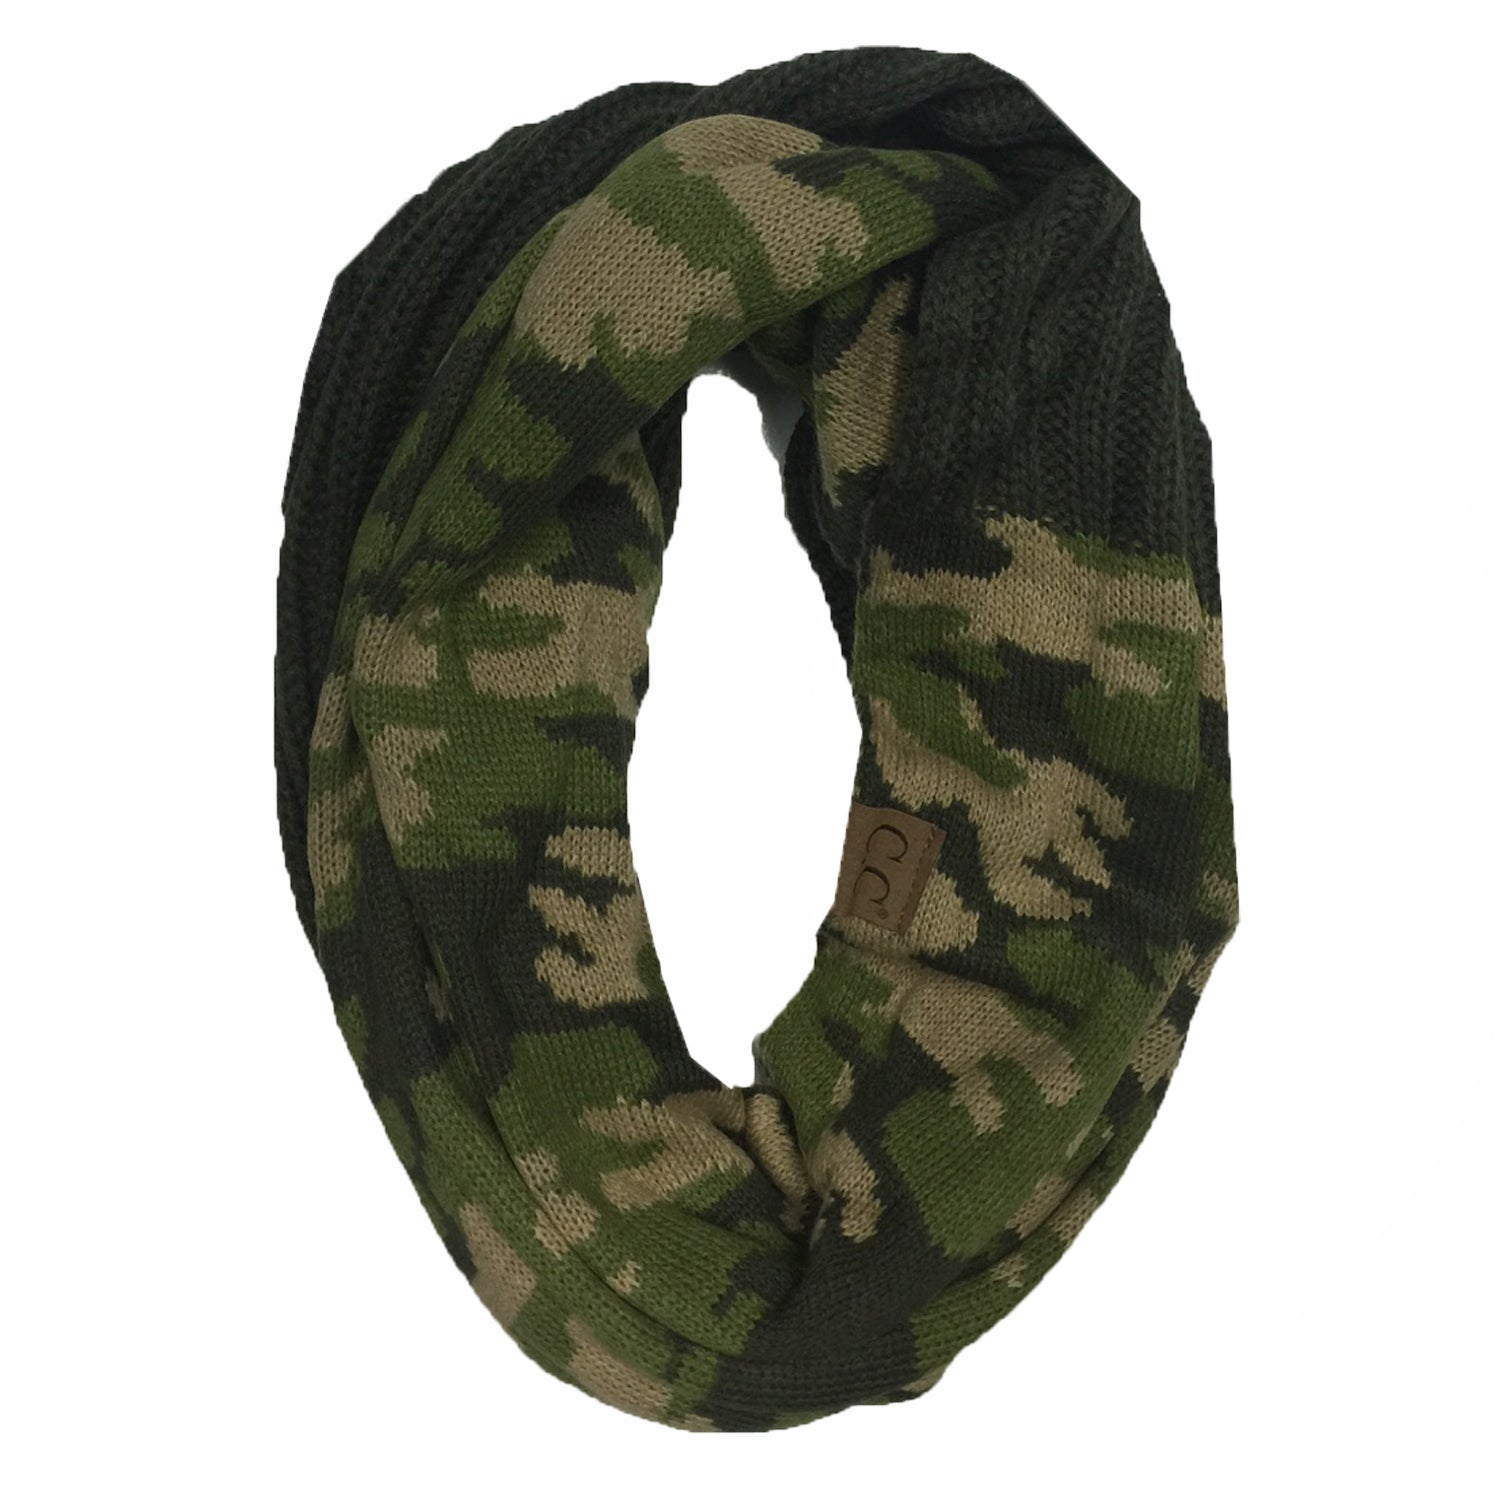 SF-46 CAMO INFINITY SCARF OLIVE